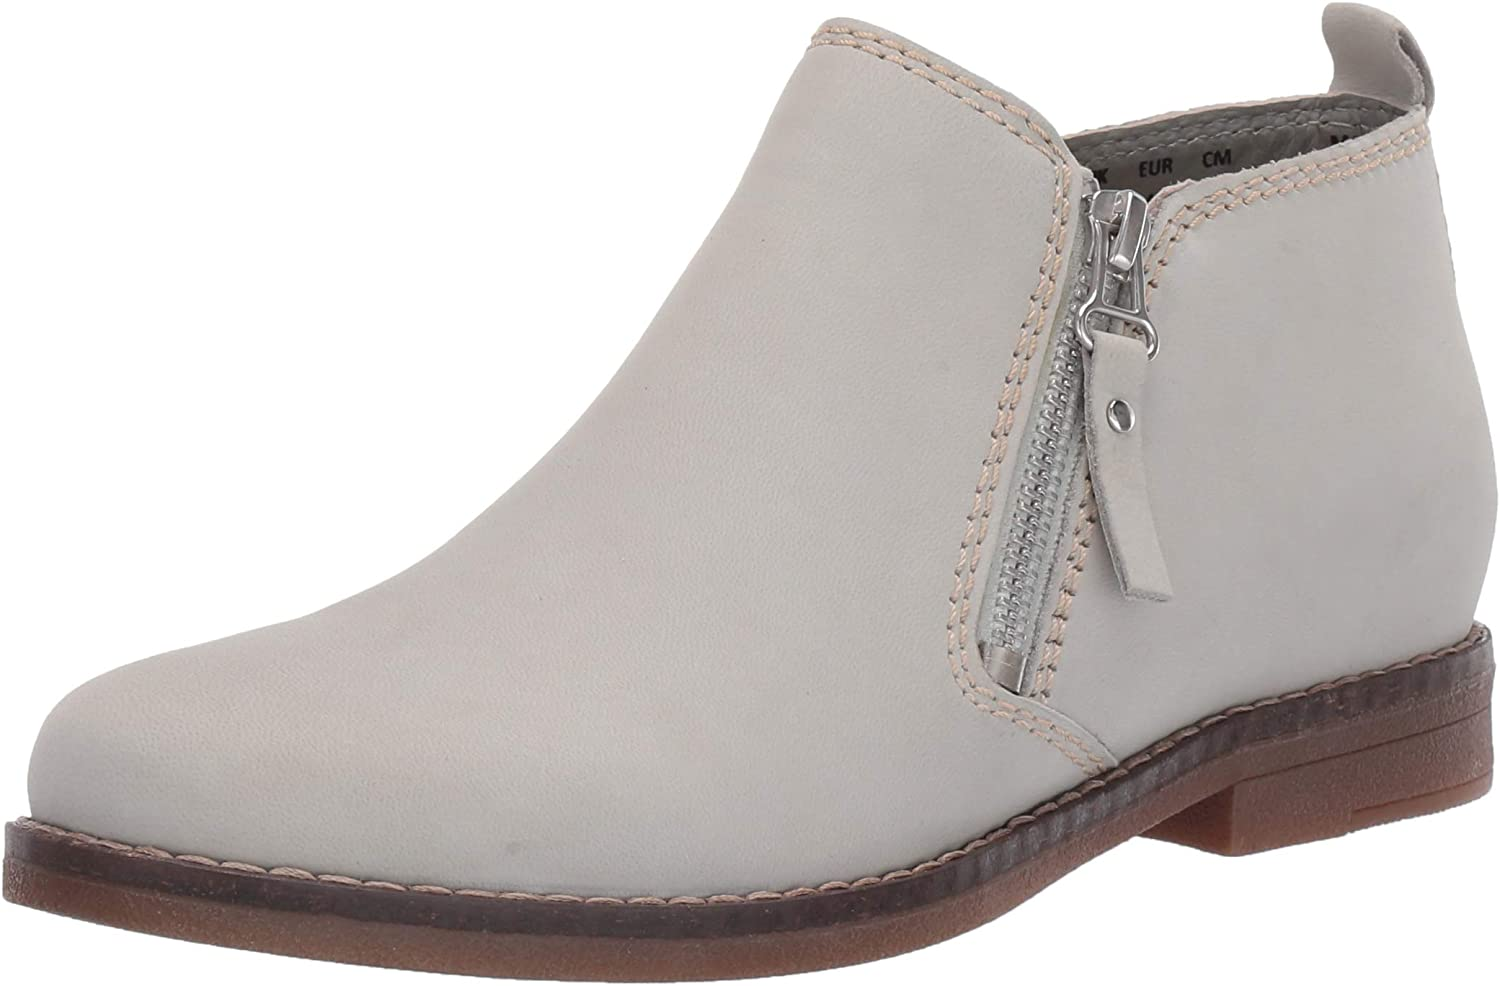 Hush Puppies Women's Mazin Cayto shoes